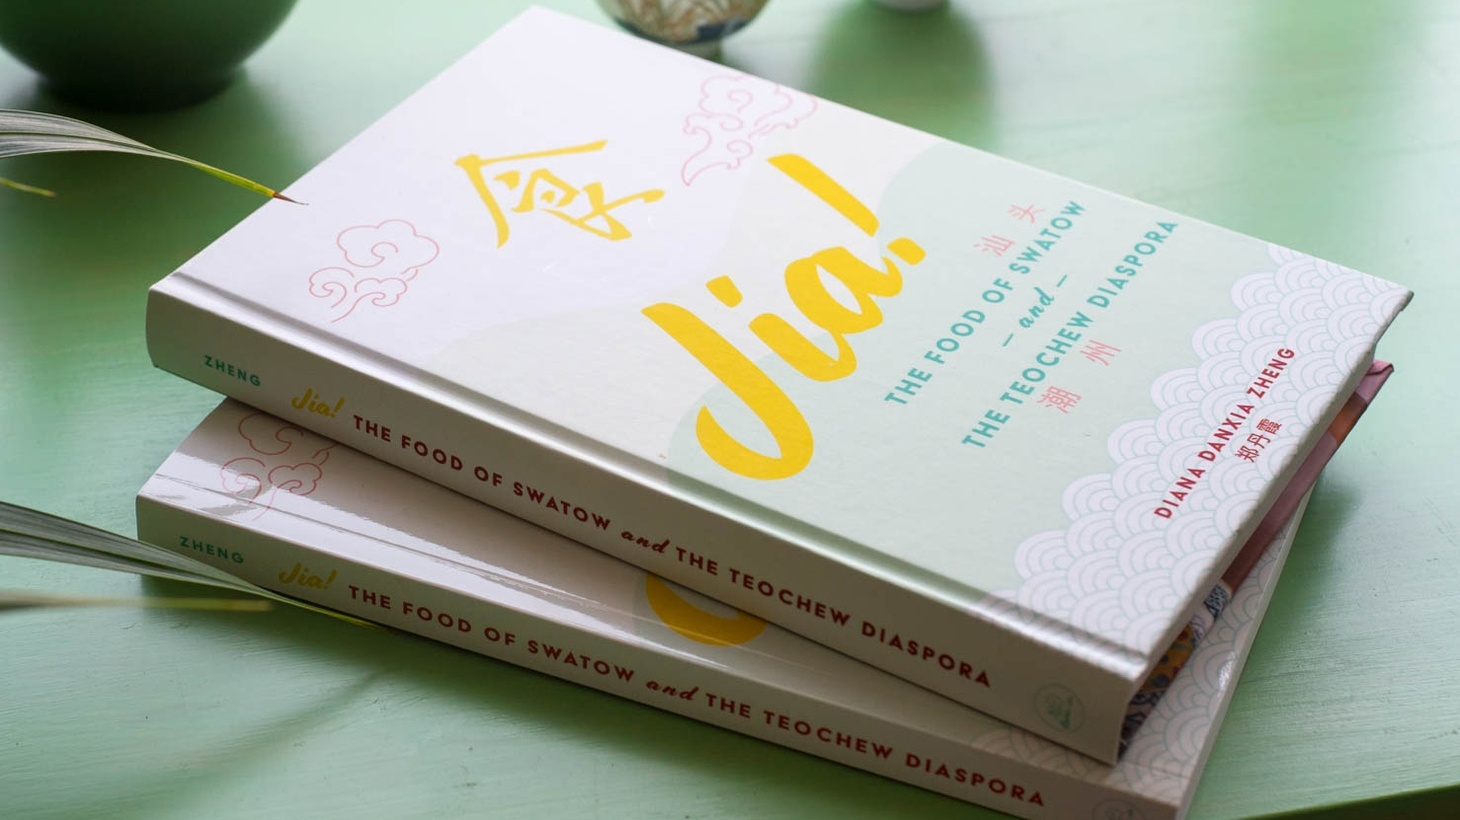 """Front cover of """"Jia! The Food of Swatow and the Teochew Diaspora"""" by Diana Zheng."""